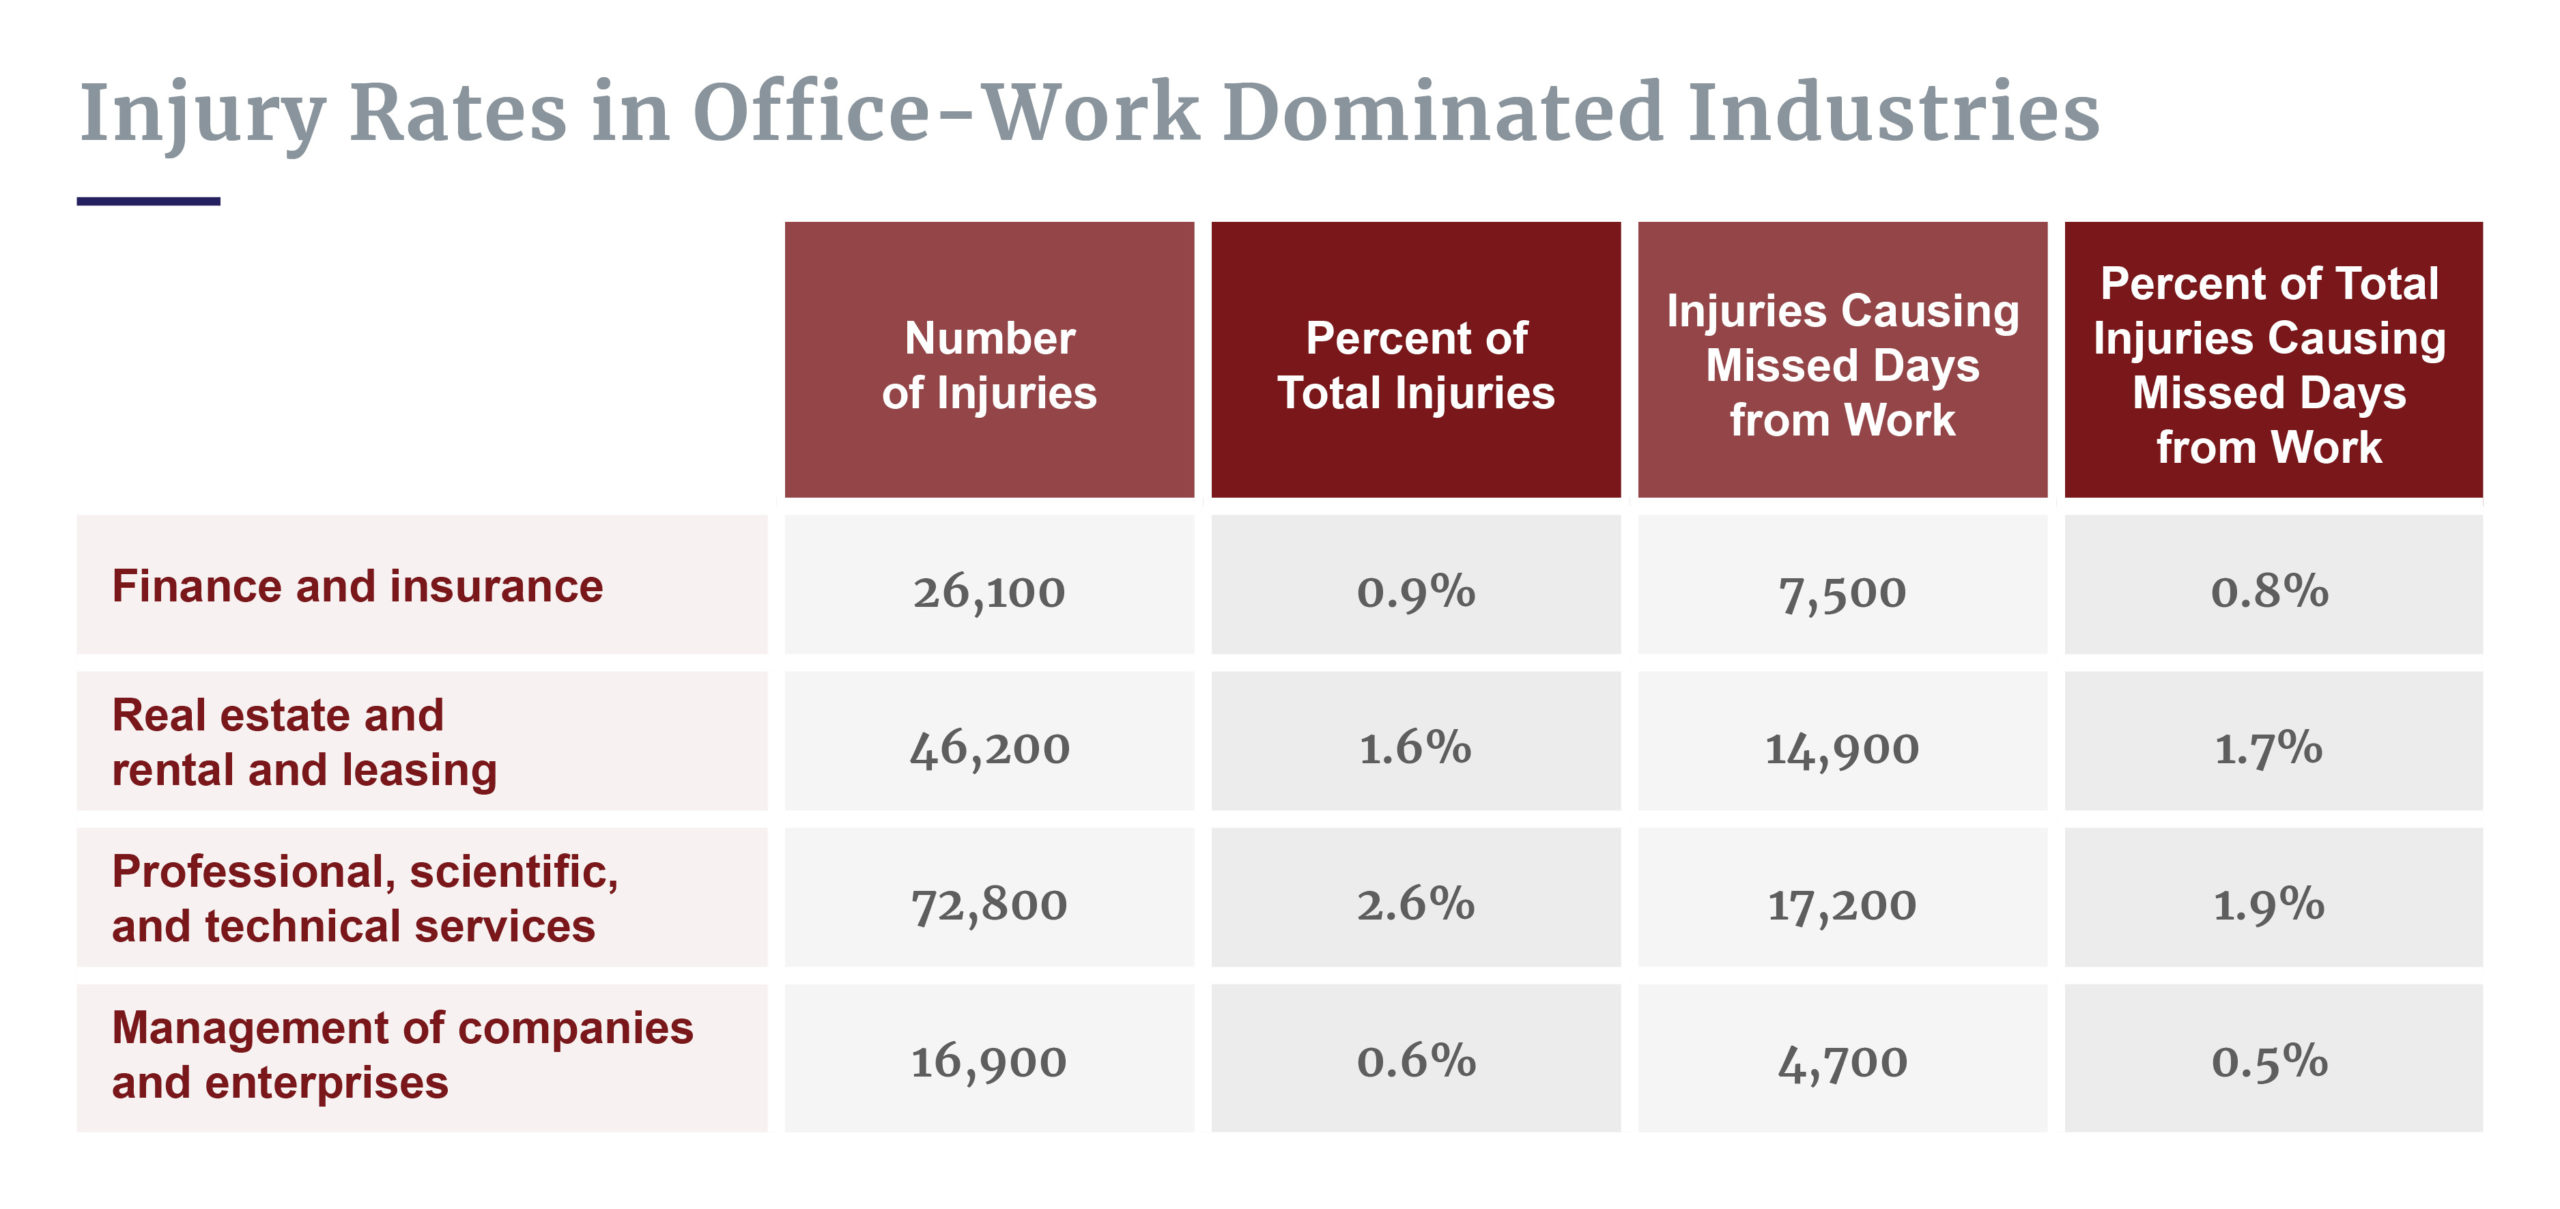 Injury rates in office work